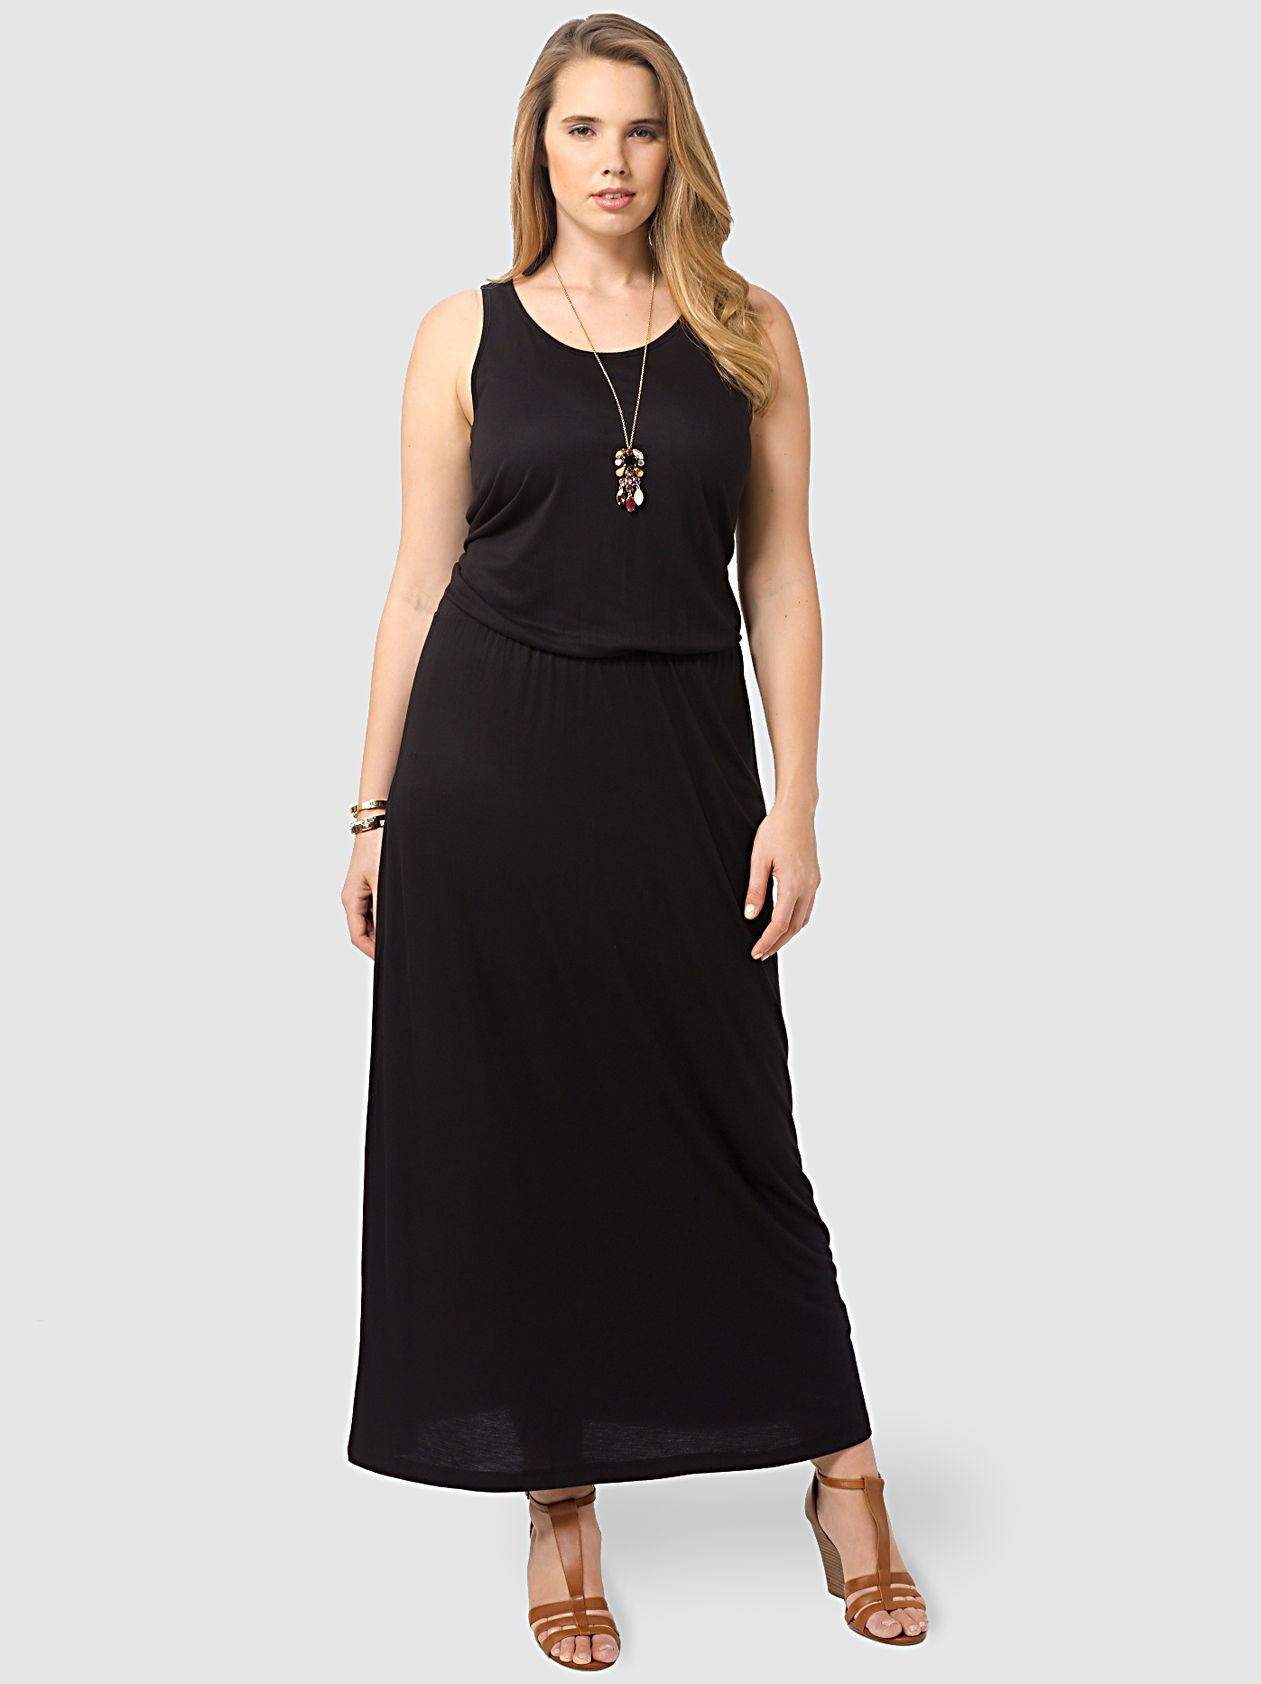 Black Sleeveless Jersey Maxi Dress By Yours Clothing Available In Sizes 14 16 18 20 22 24 26 28 And 30 Maxi Jersey Dress Clothes Maxi Dress [ 1684 x 1261 Pixel ]